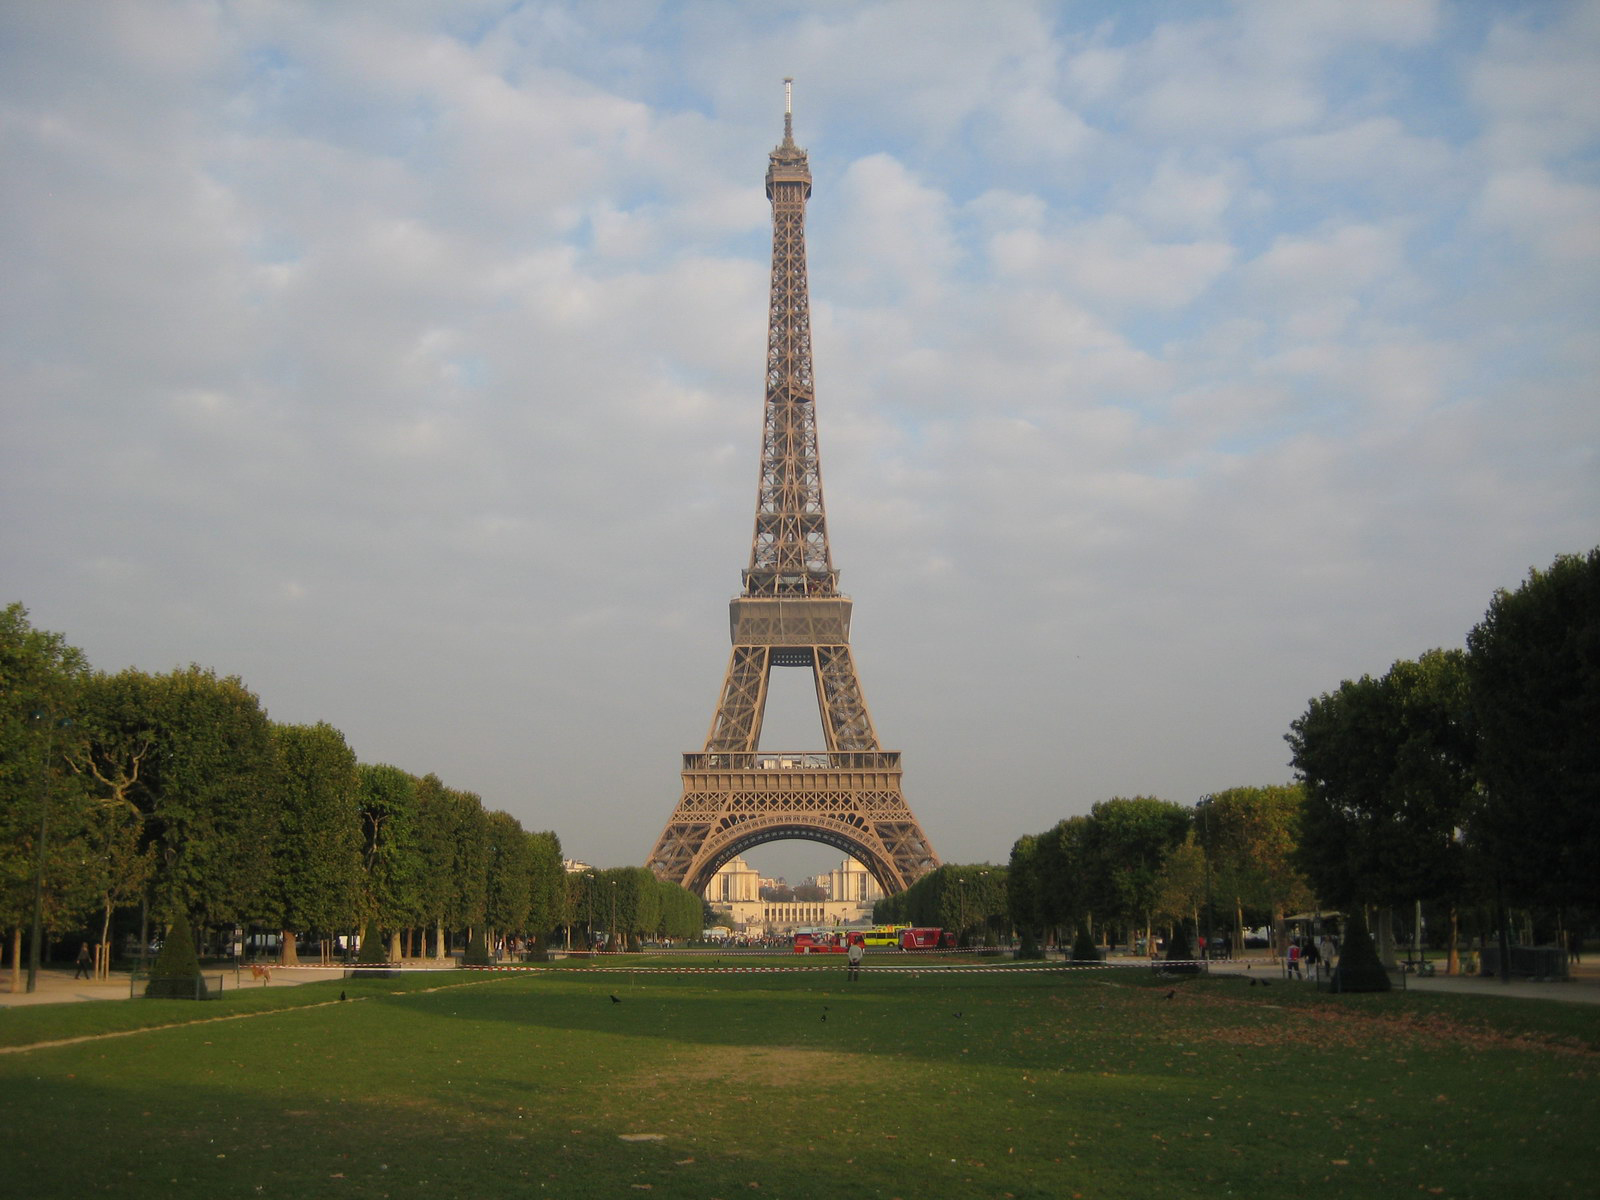 Fig. 1. A view of the Eiffel Tower from the Champ de Mars. CC BY 2.0 by Terrazzo.